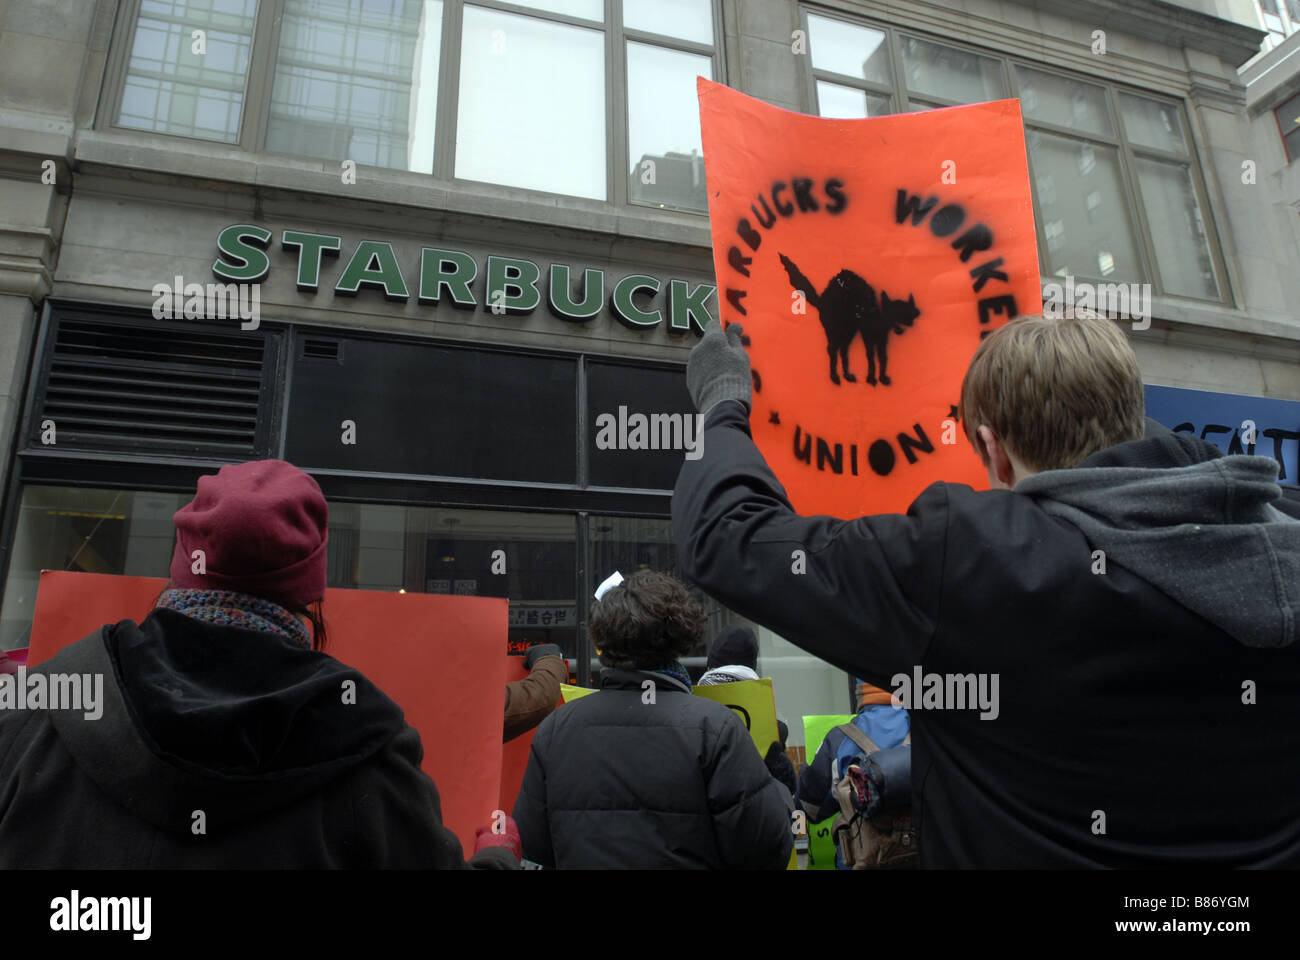 Starbucks workers and supporters protest Starbucks alleged anti union activity in New York - Stock Image